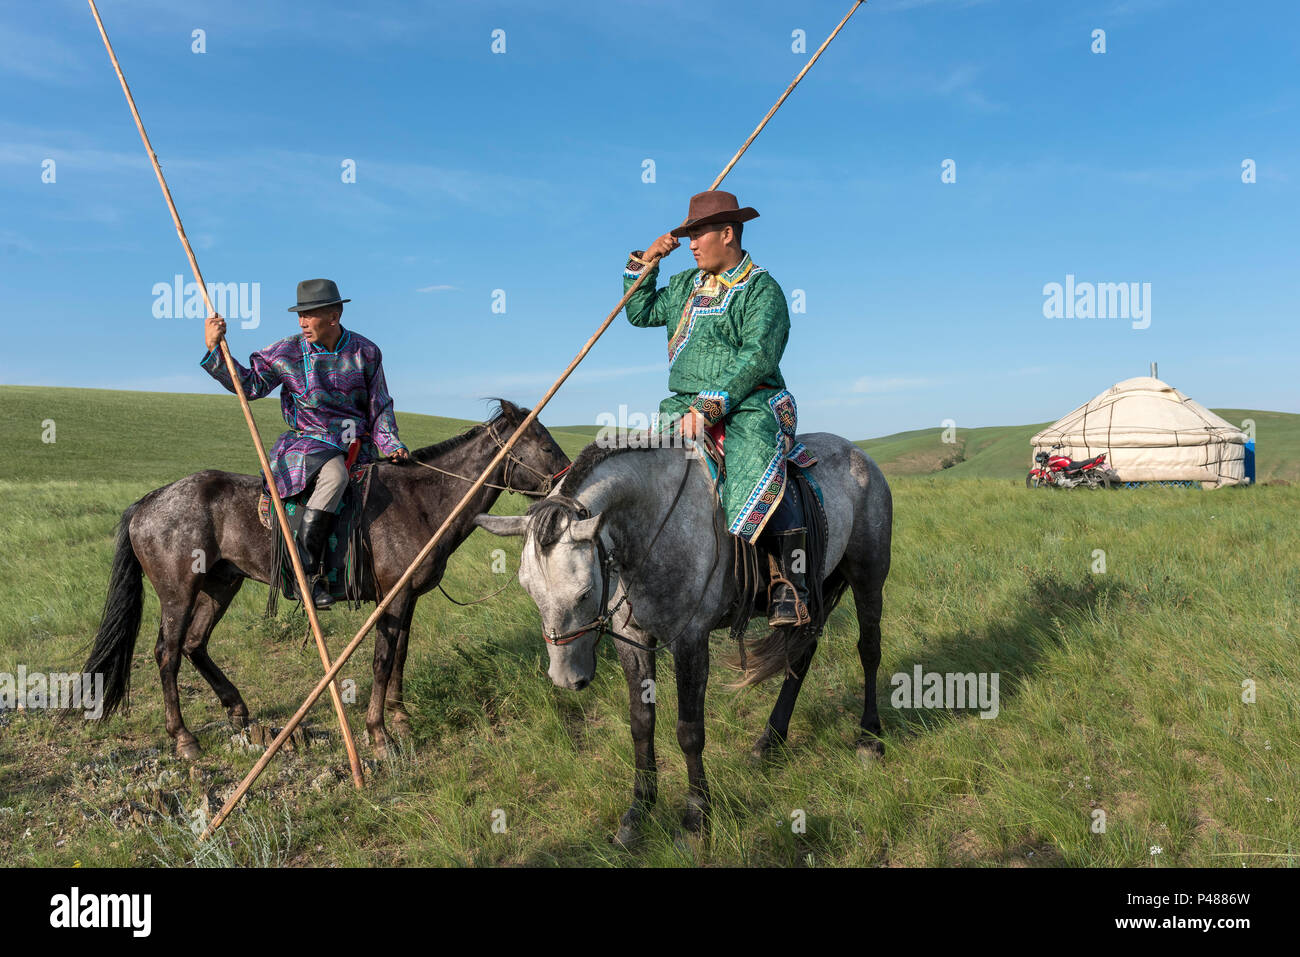 Horseman dressed in traditional costume hold rope and pole urga or lassoe, Inner Mongolia, China - Stock Image